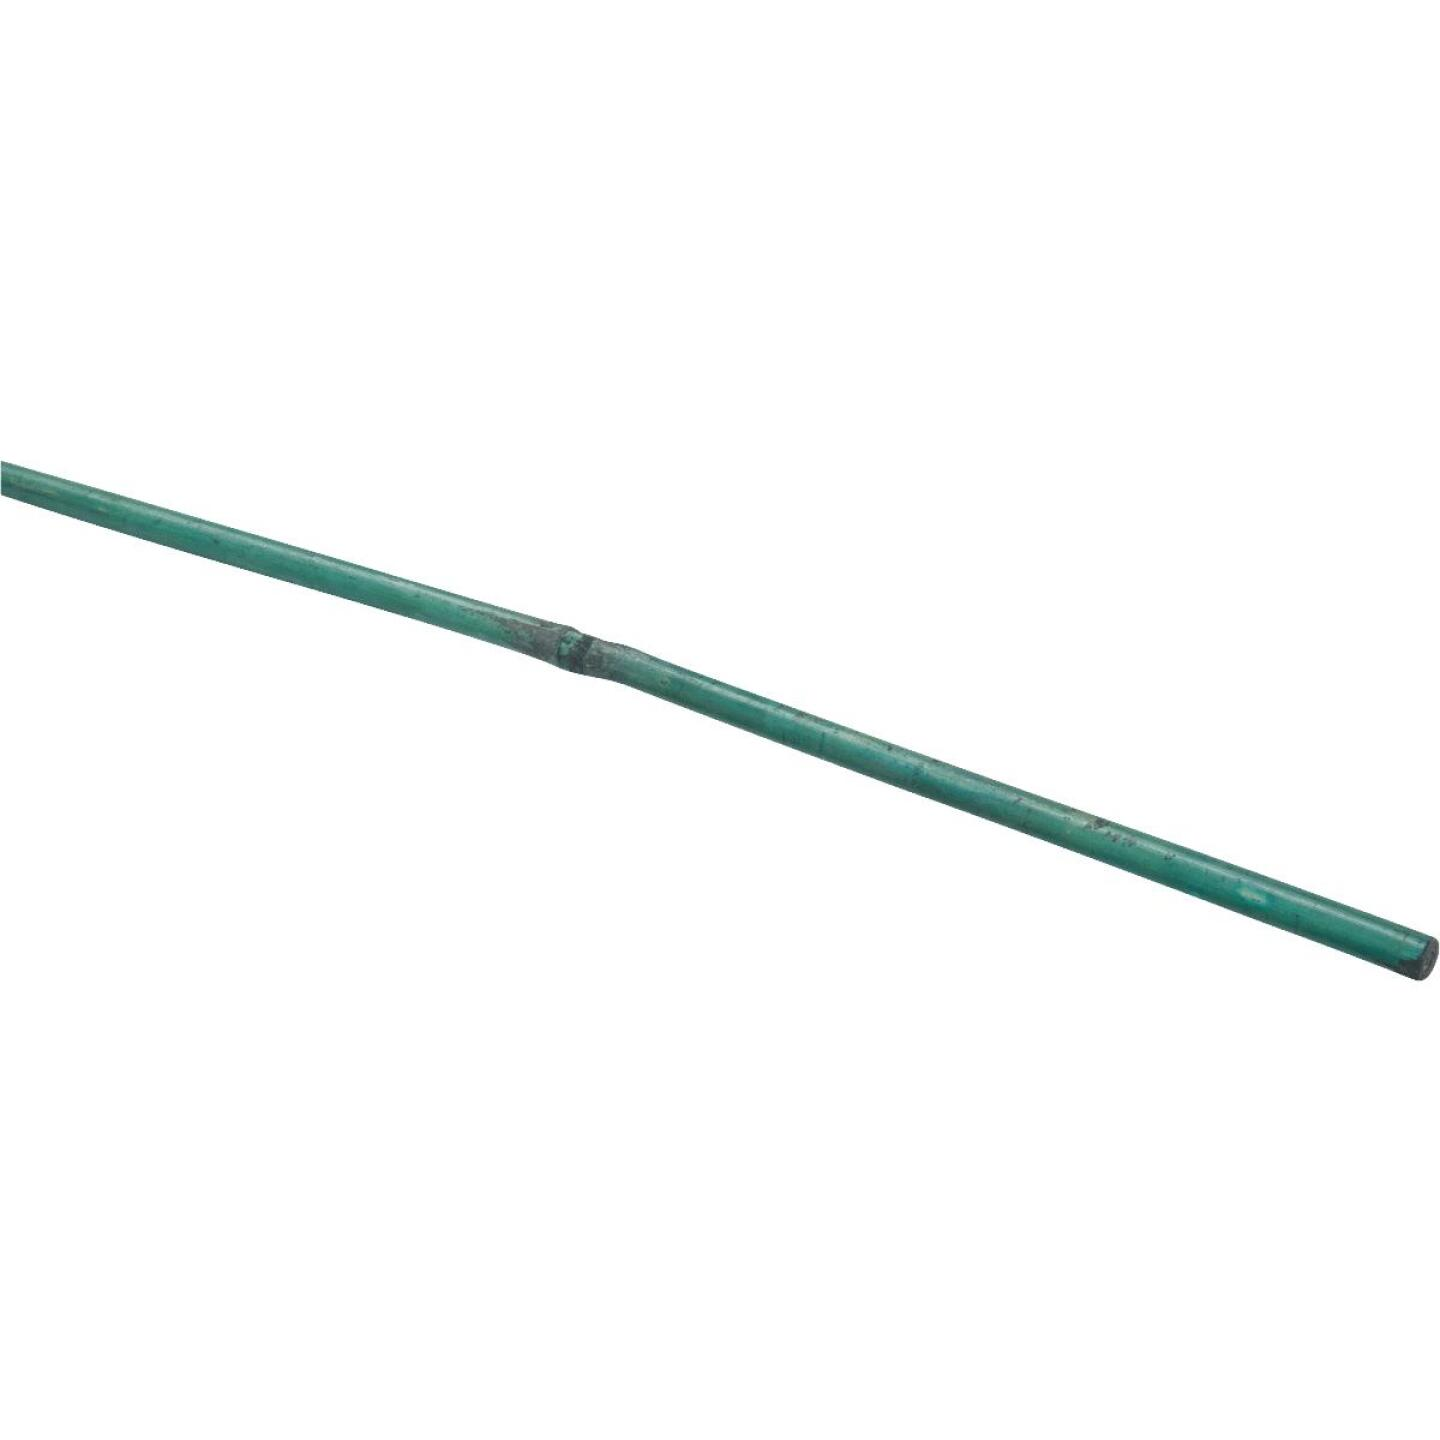 Bond 4 Ft. Green Bamboo Plant Stakes (25-Pack) Image 23